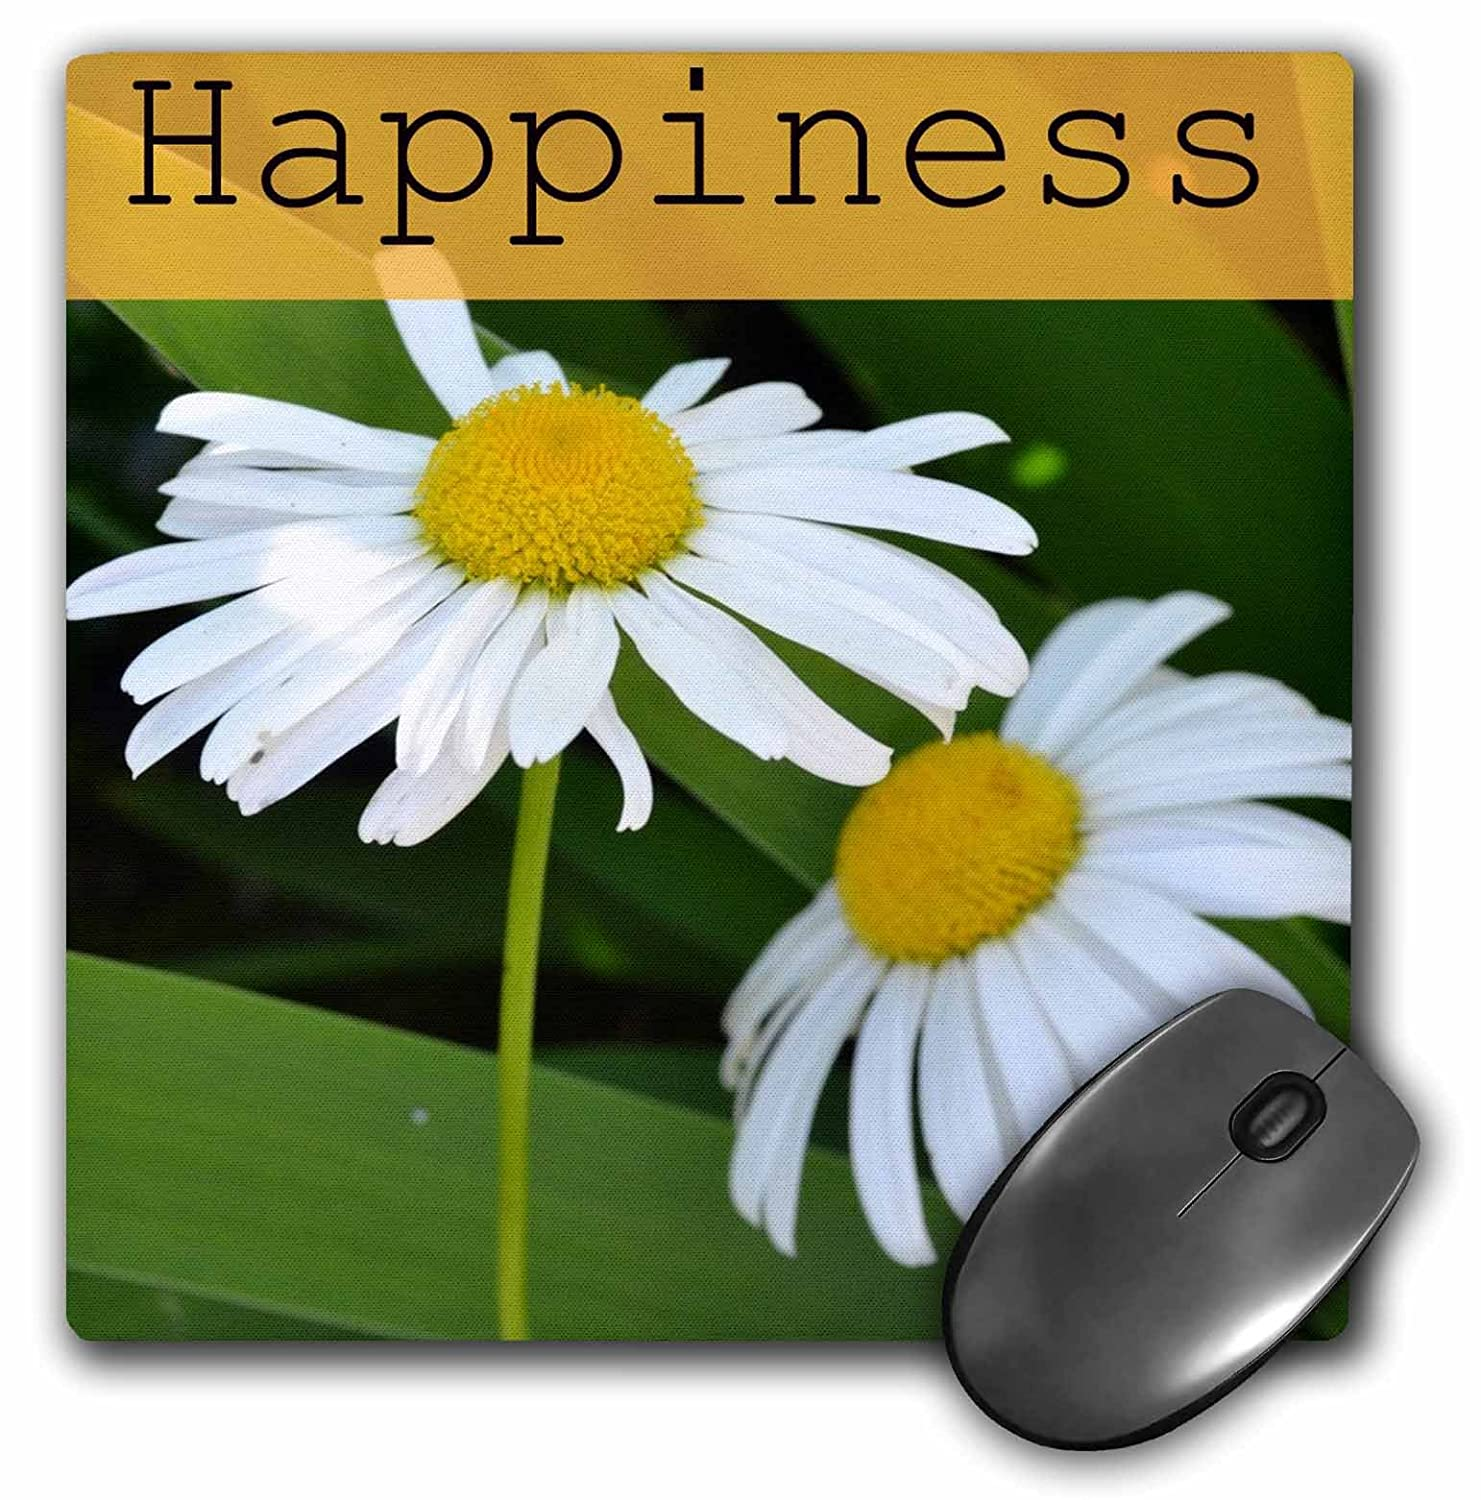 Amazon 3drose Llc 8 X 8 X 025 Inches Mouse Pad Happiness